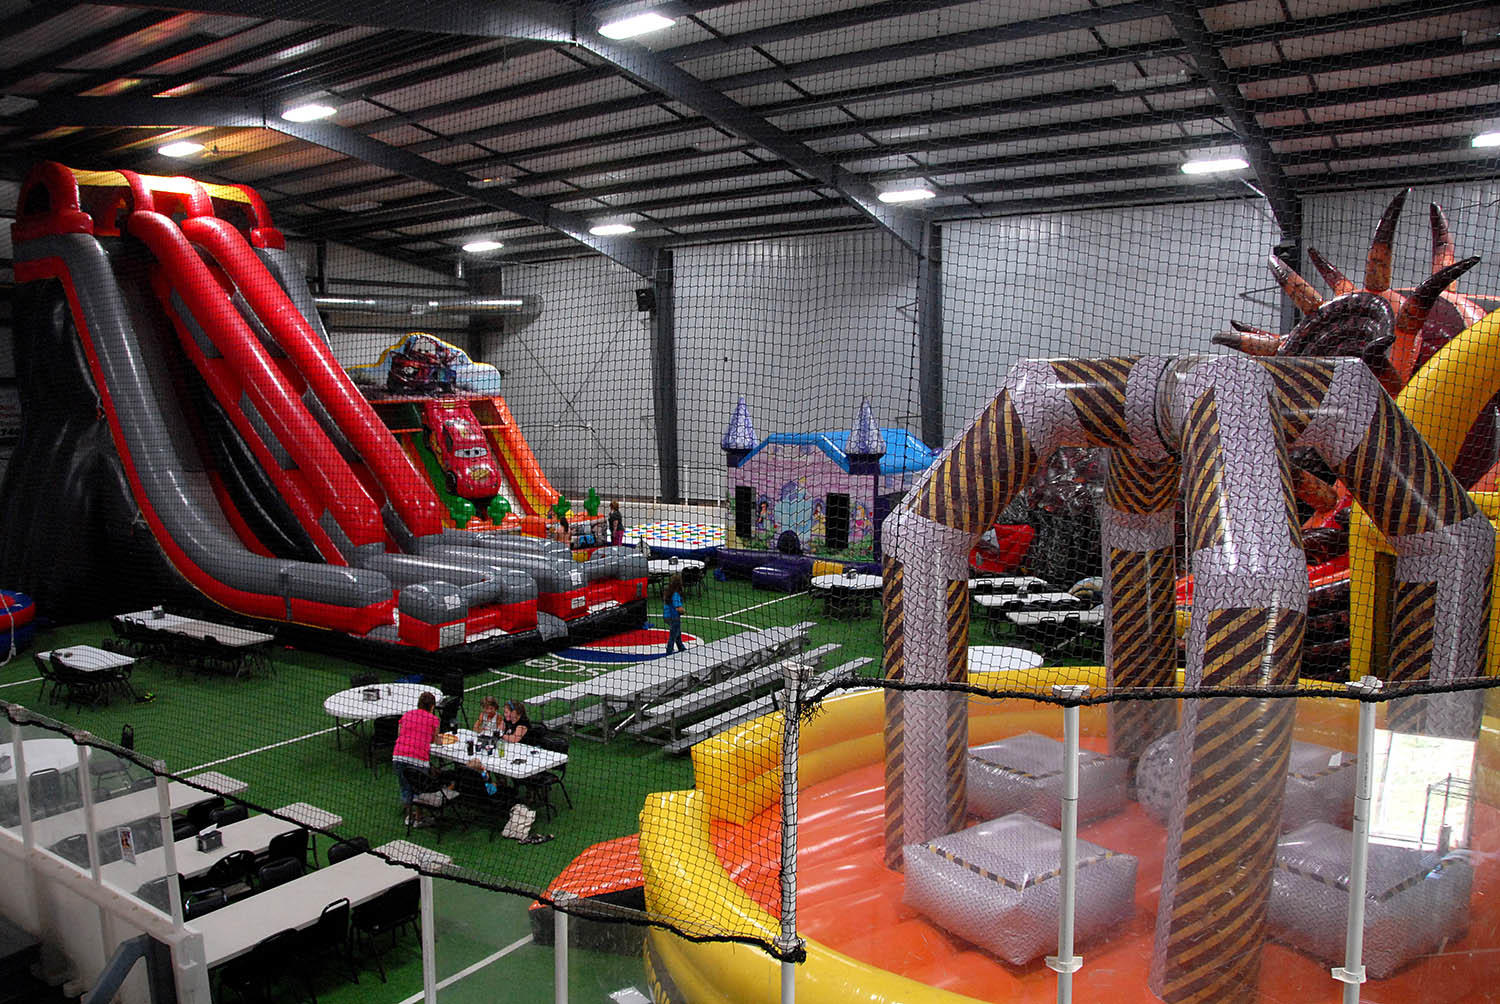 Triple Crown Family Fun Center